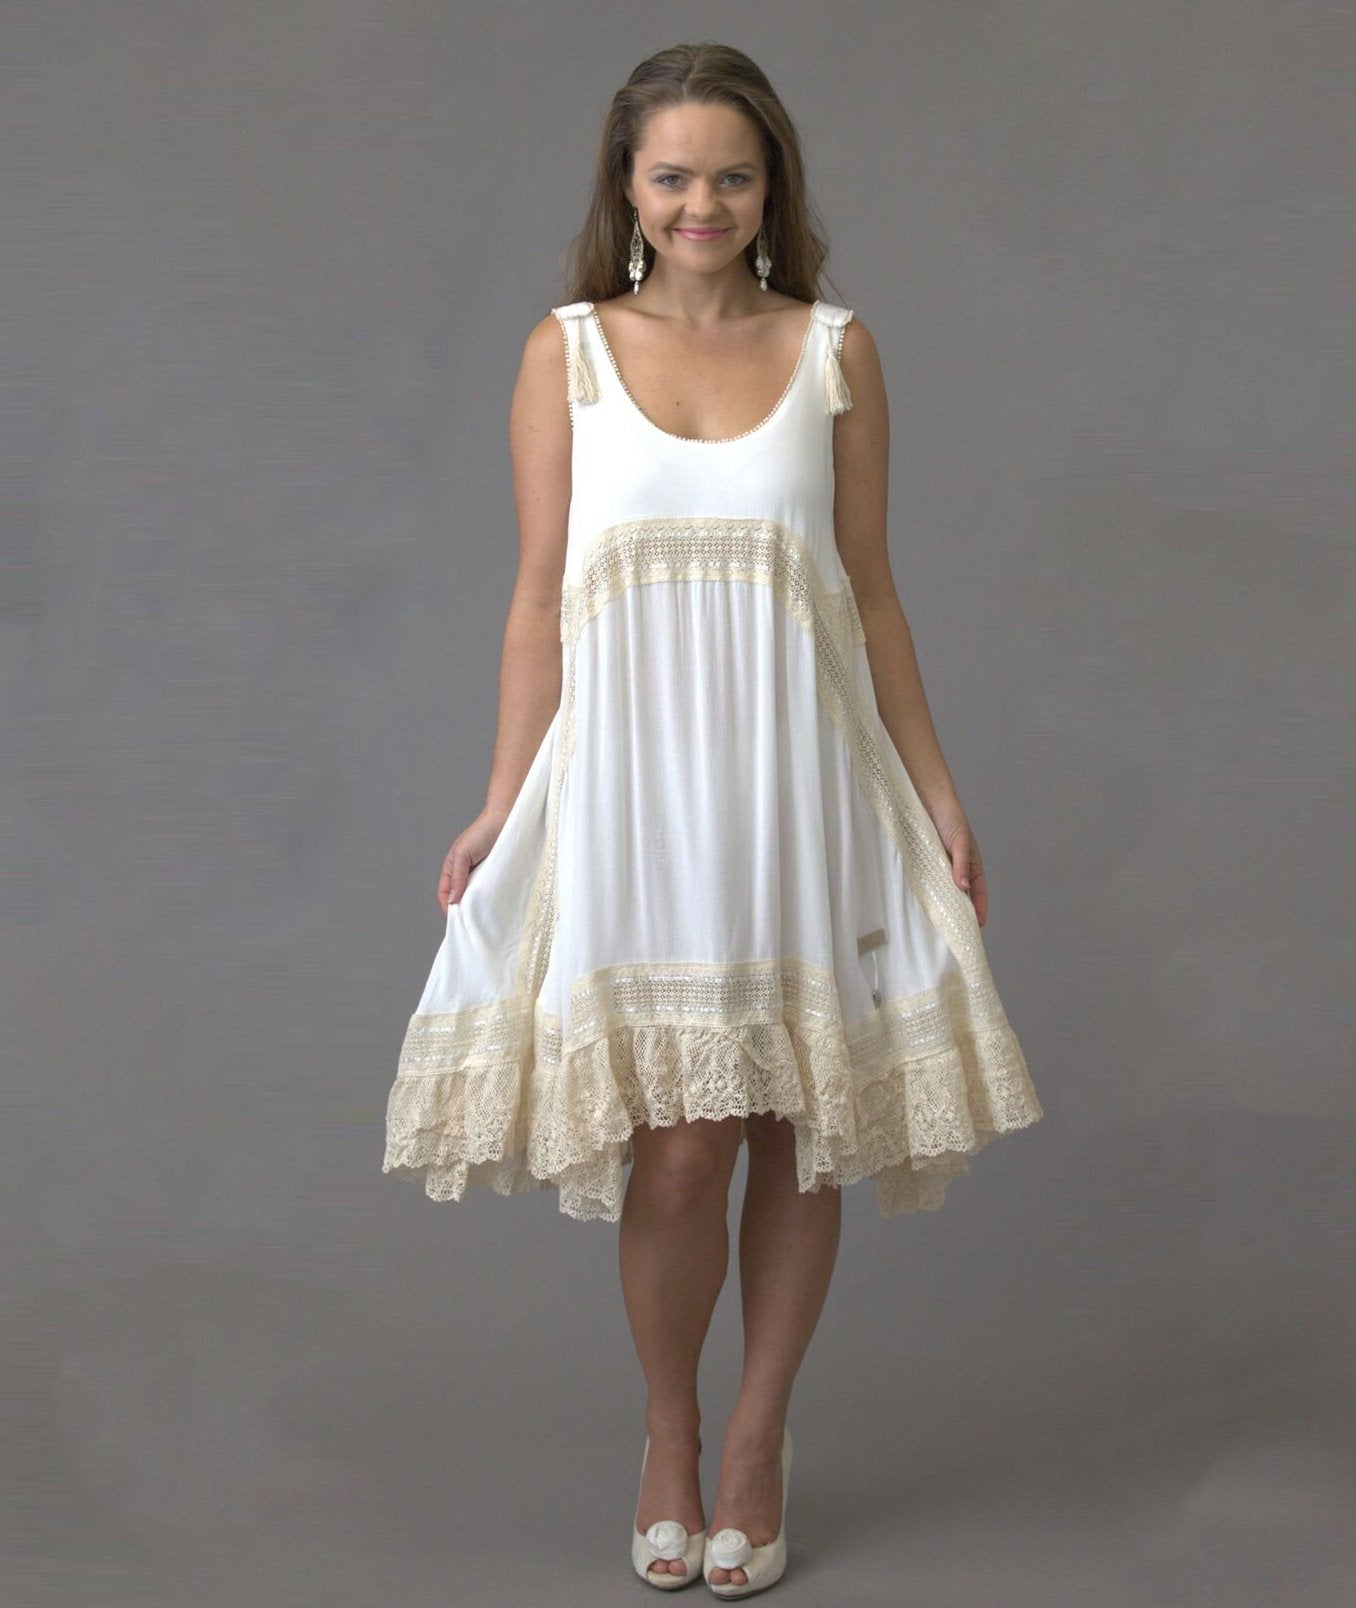 Shekinah Lace Dress